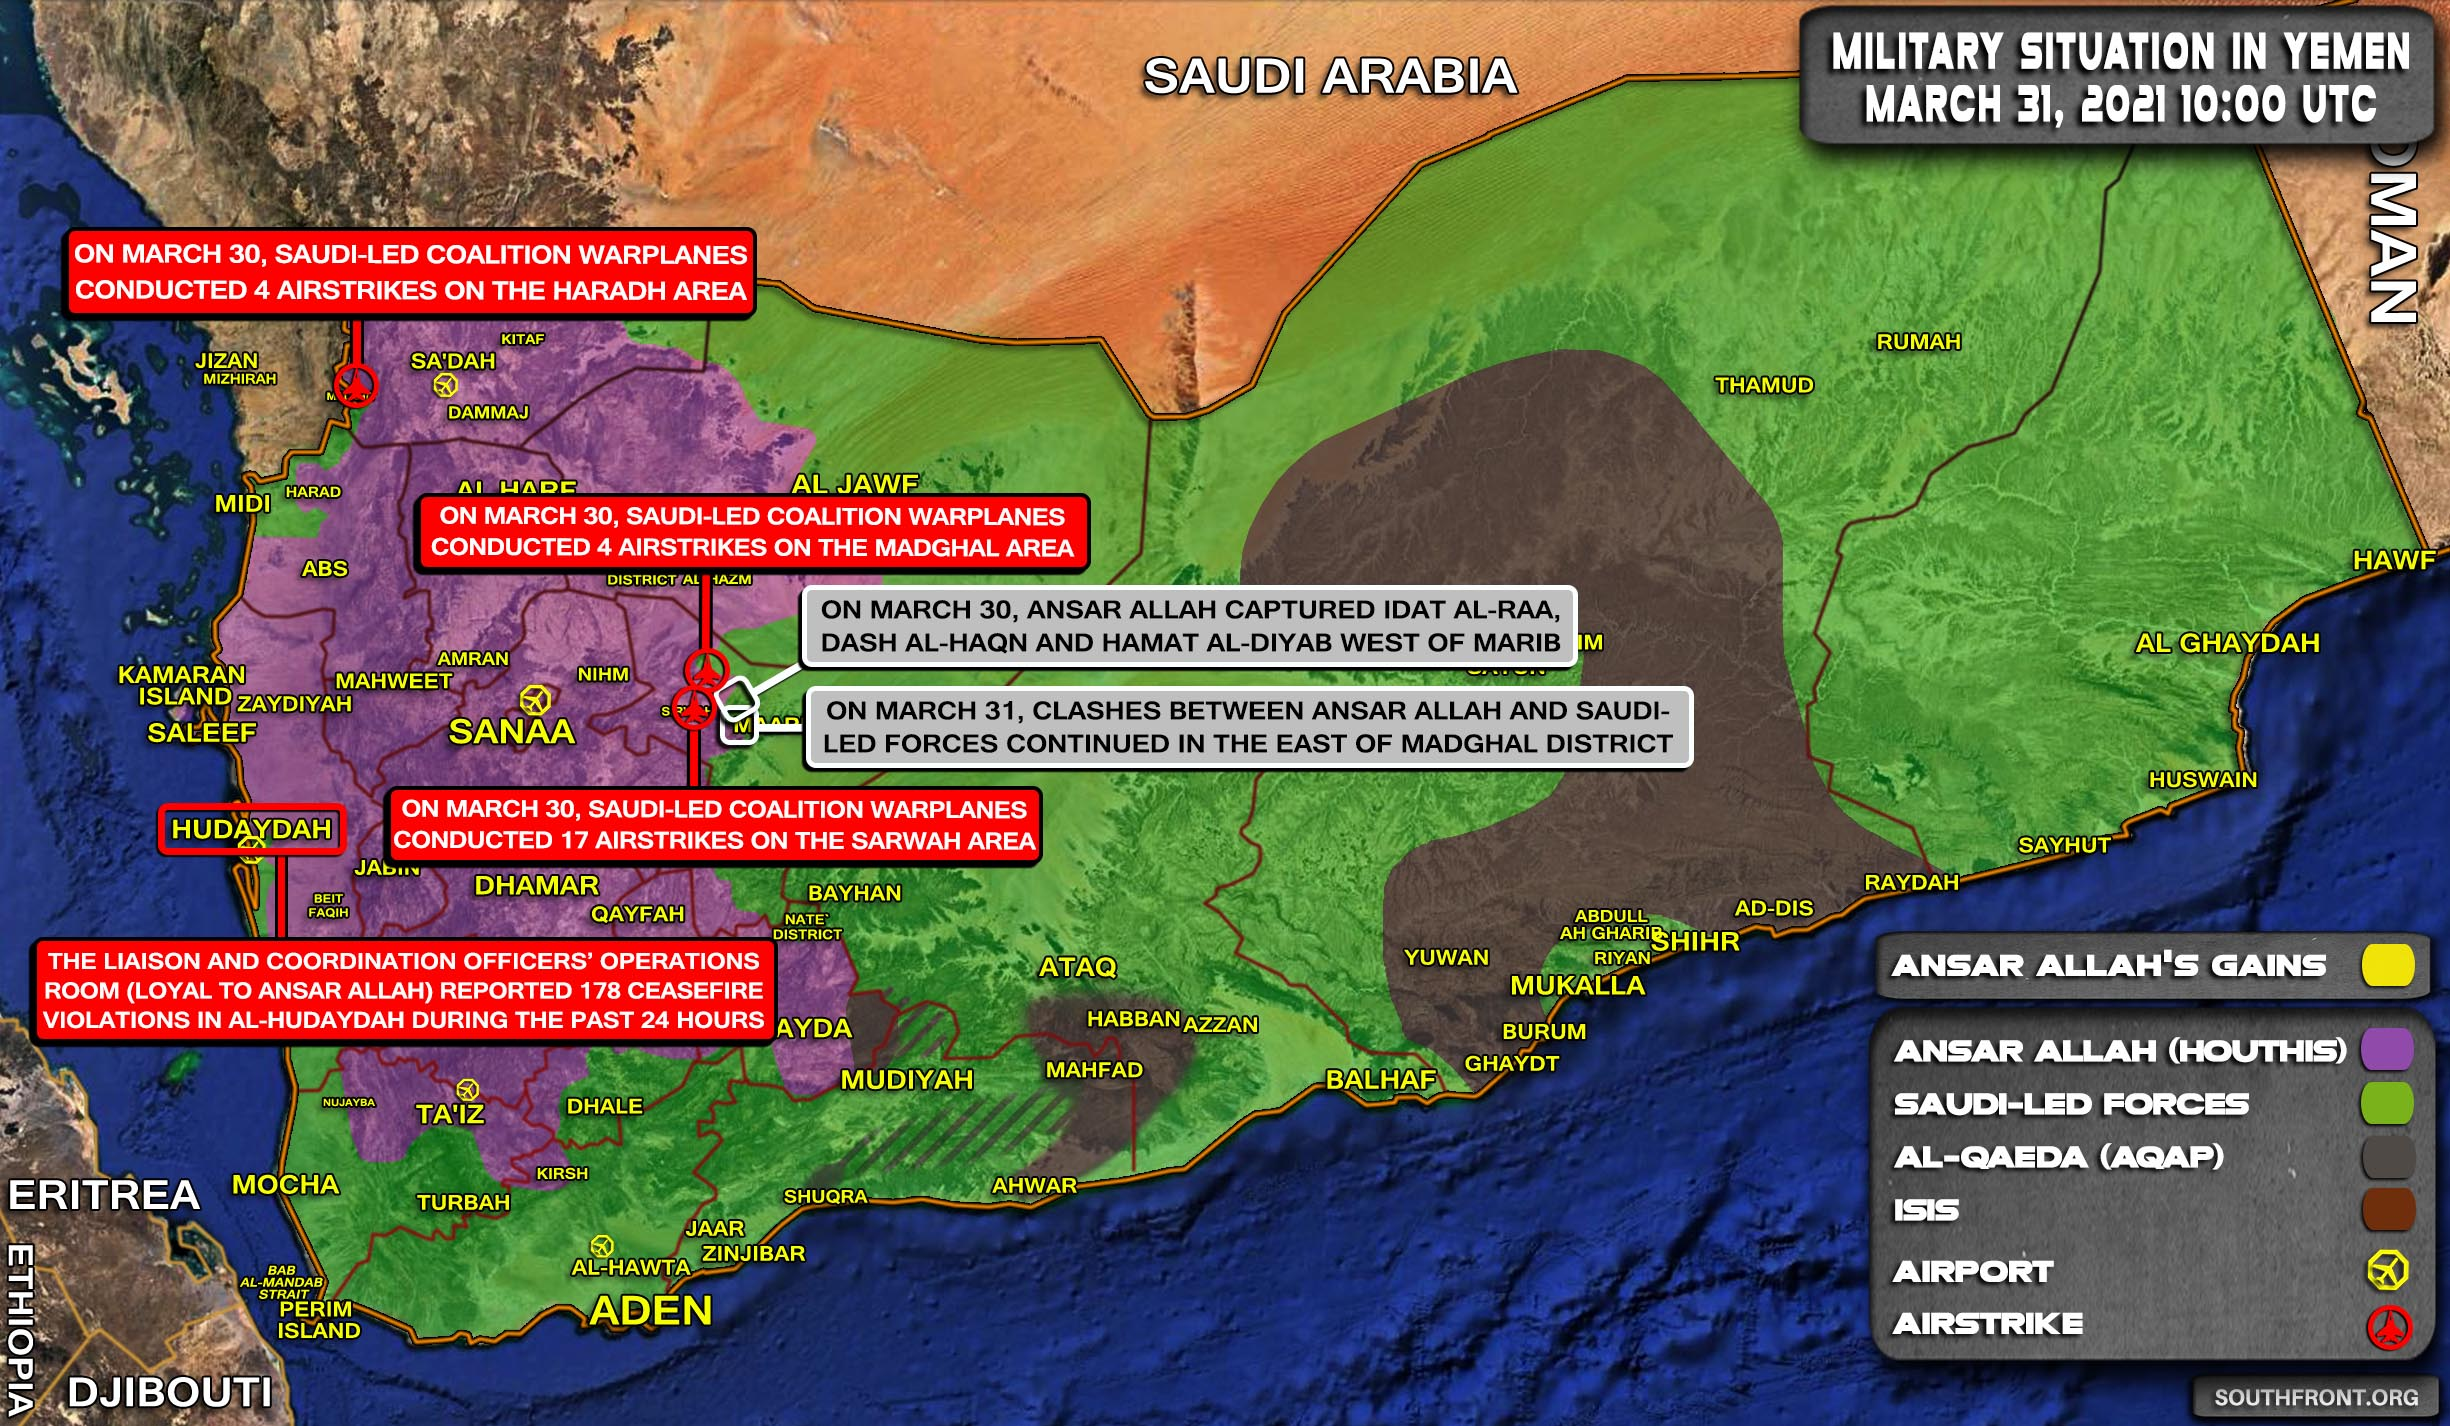 Military Situation In Yemen On March 31, 2021 (Map Update)